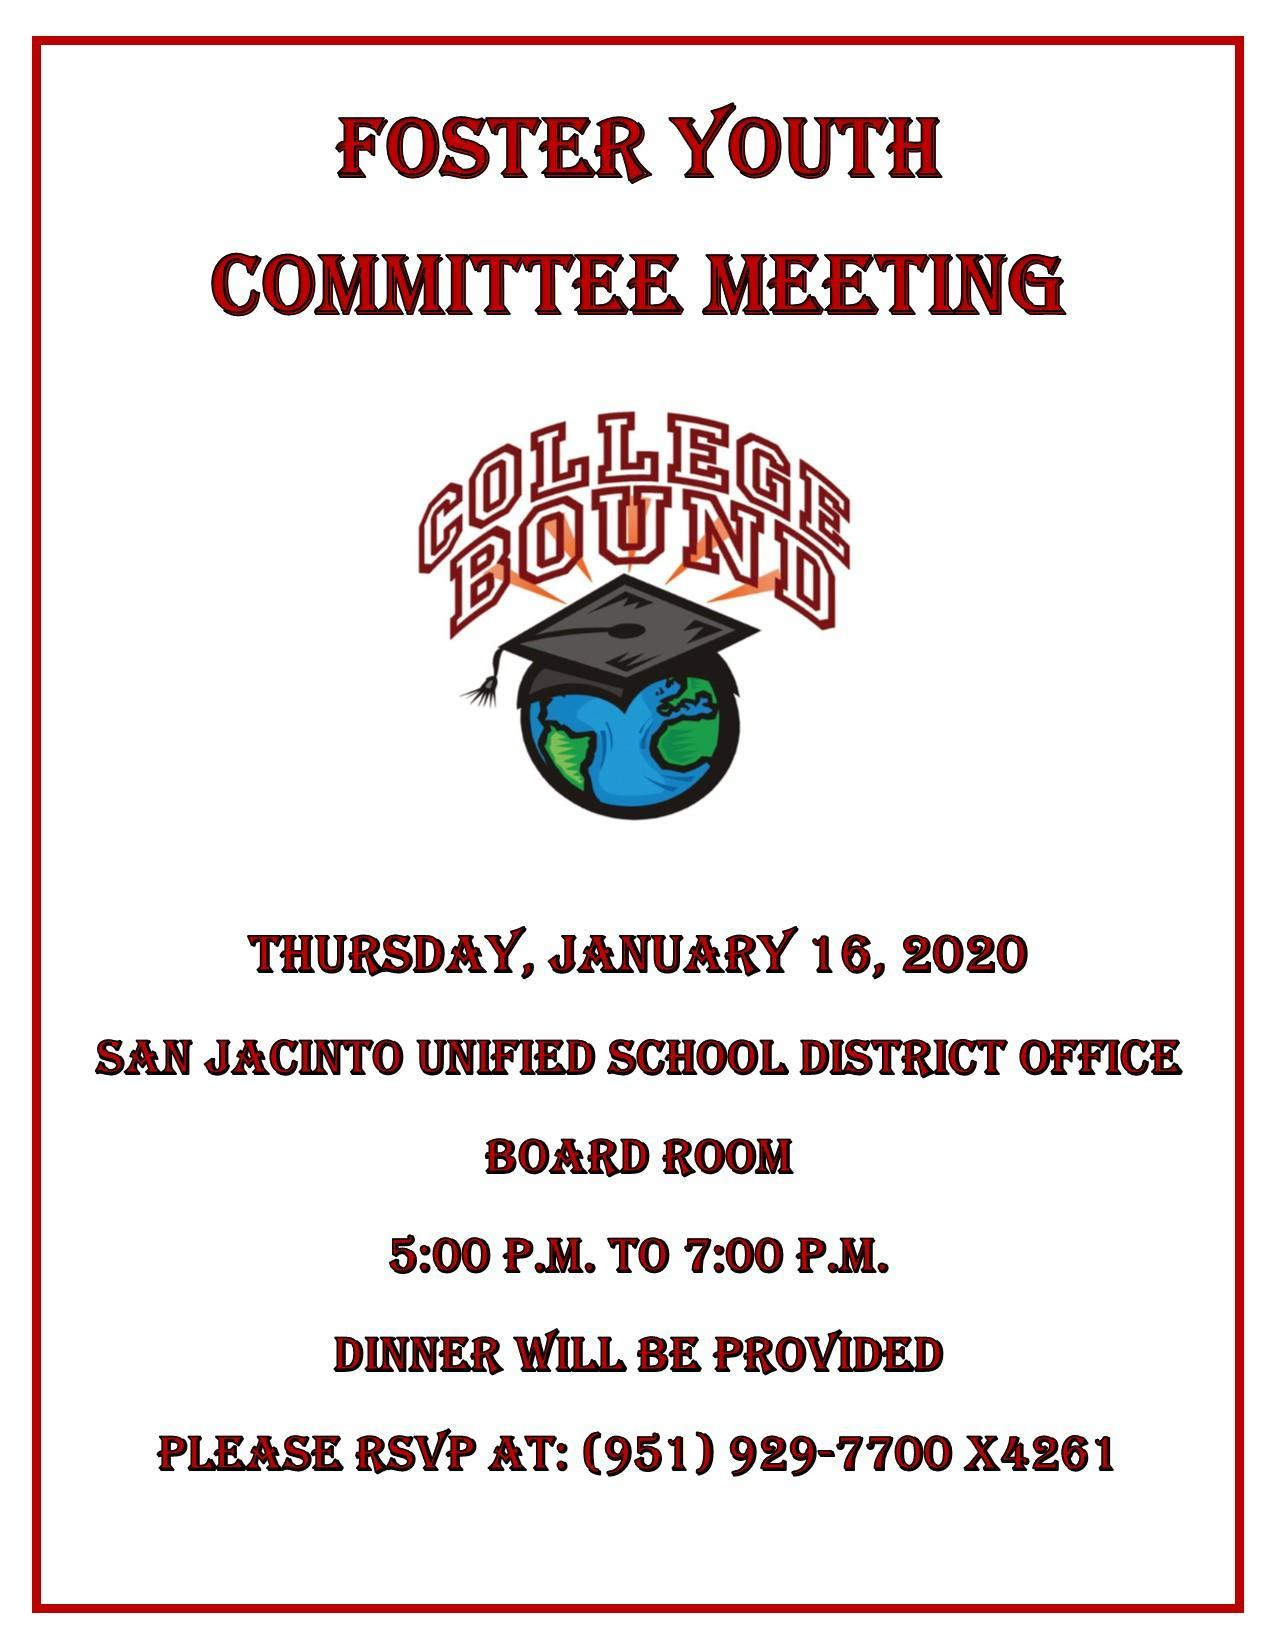 Foster Youth Committee Meeting January 16, 2020